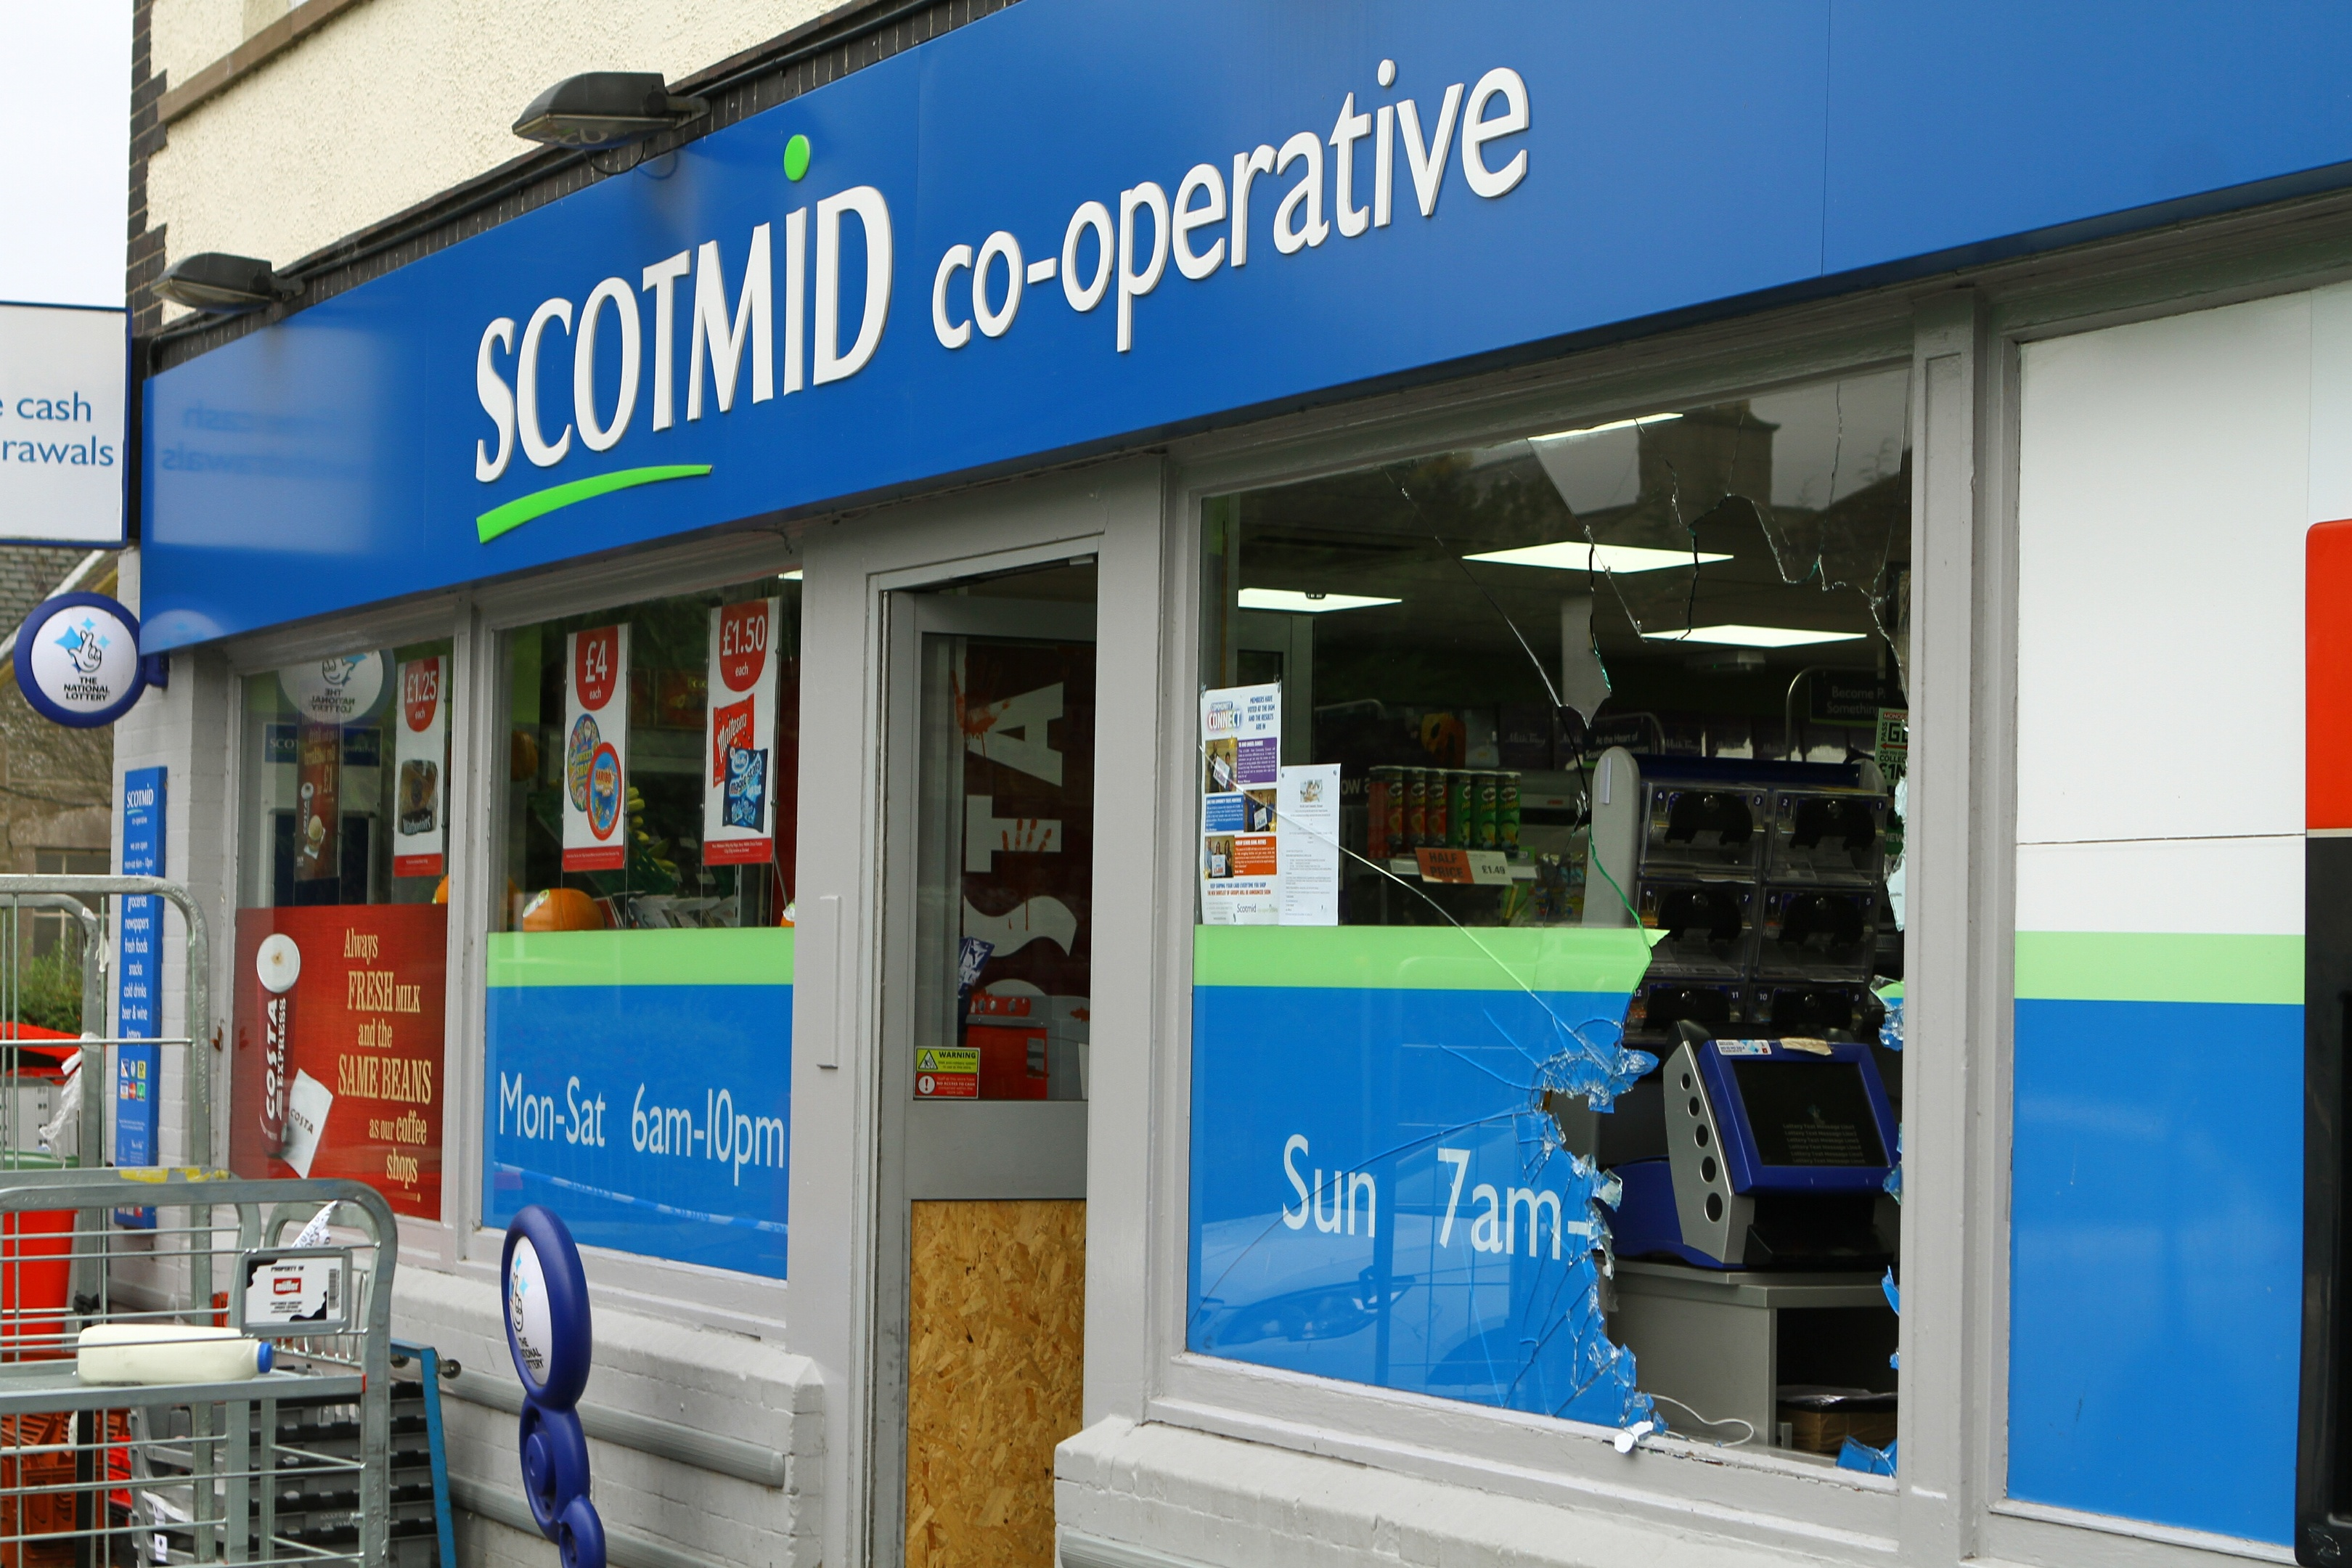 Scotmid on Invergowrie Main Street which was broken into again